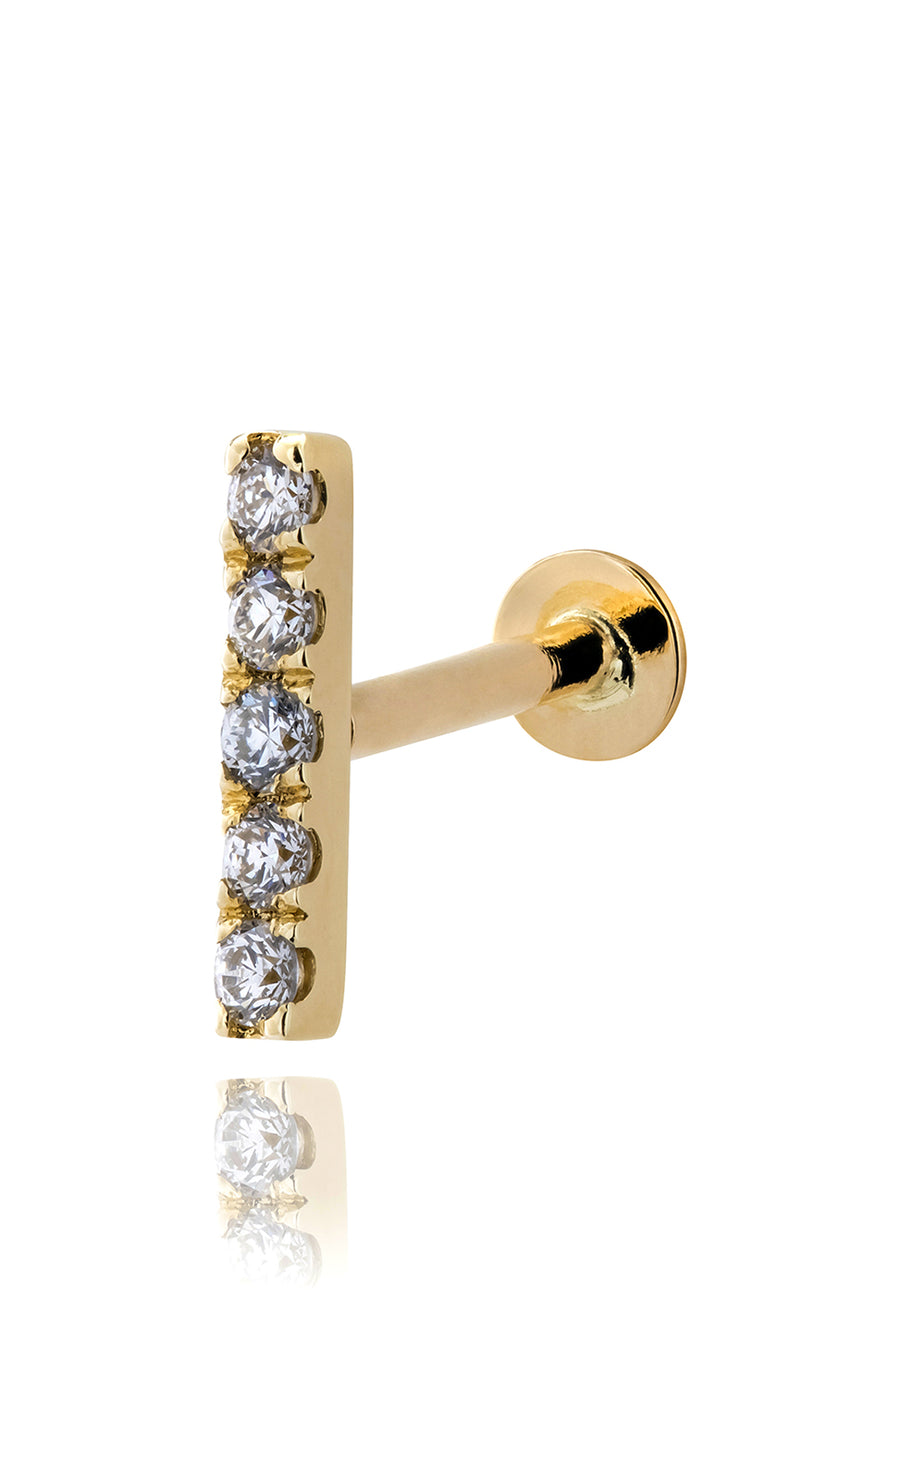 Modernist Diamond Linear Labret in 14K Gold